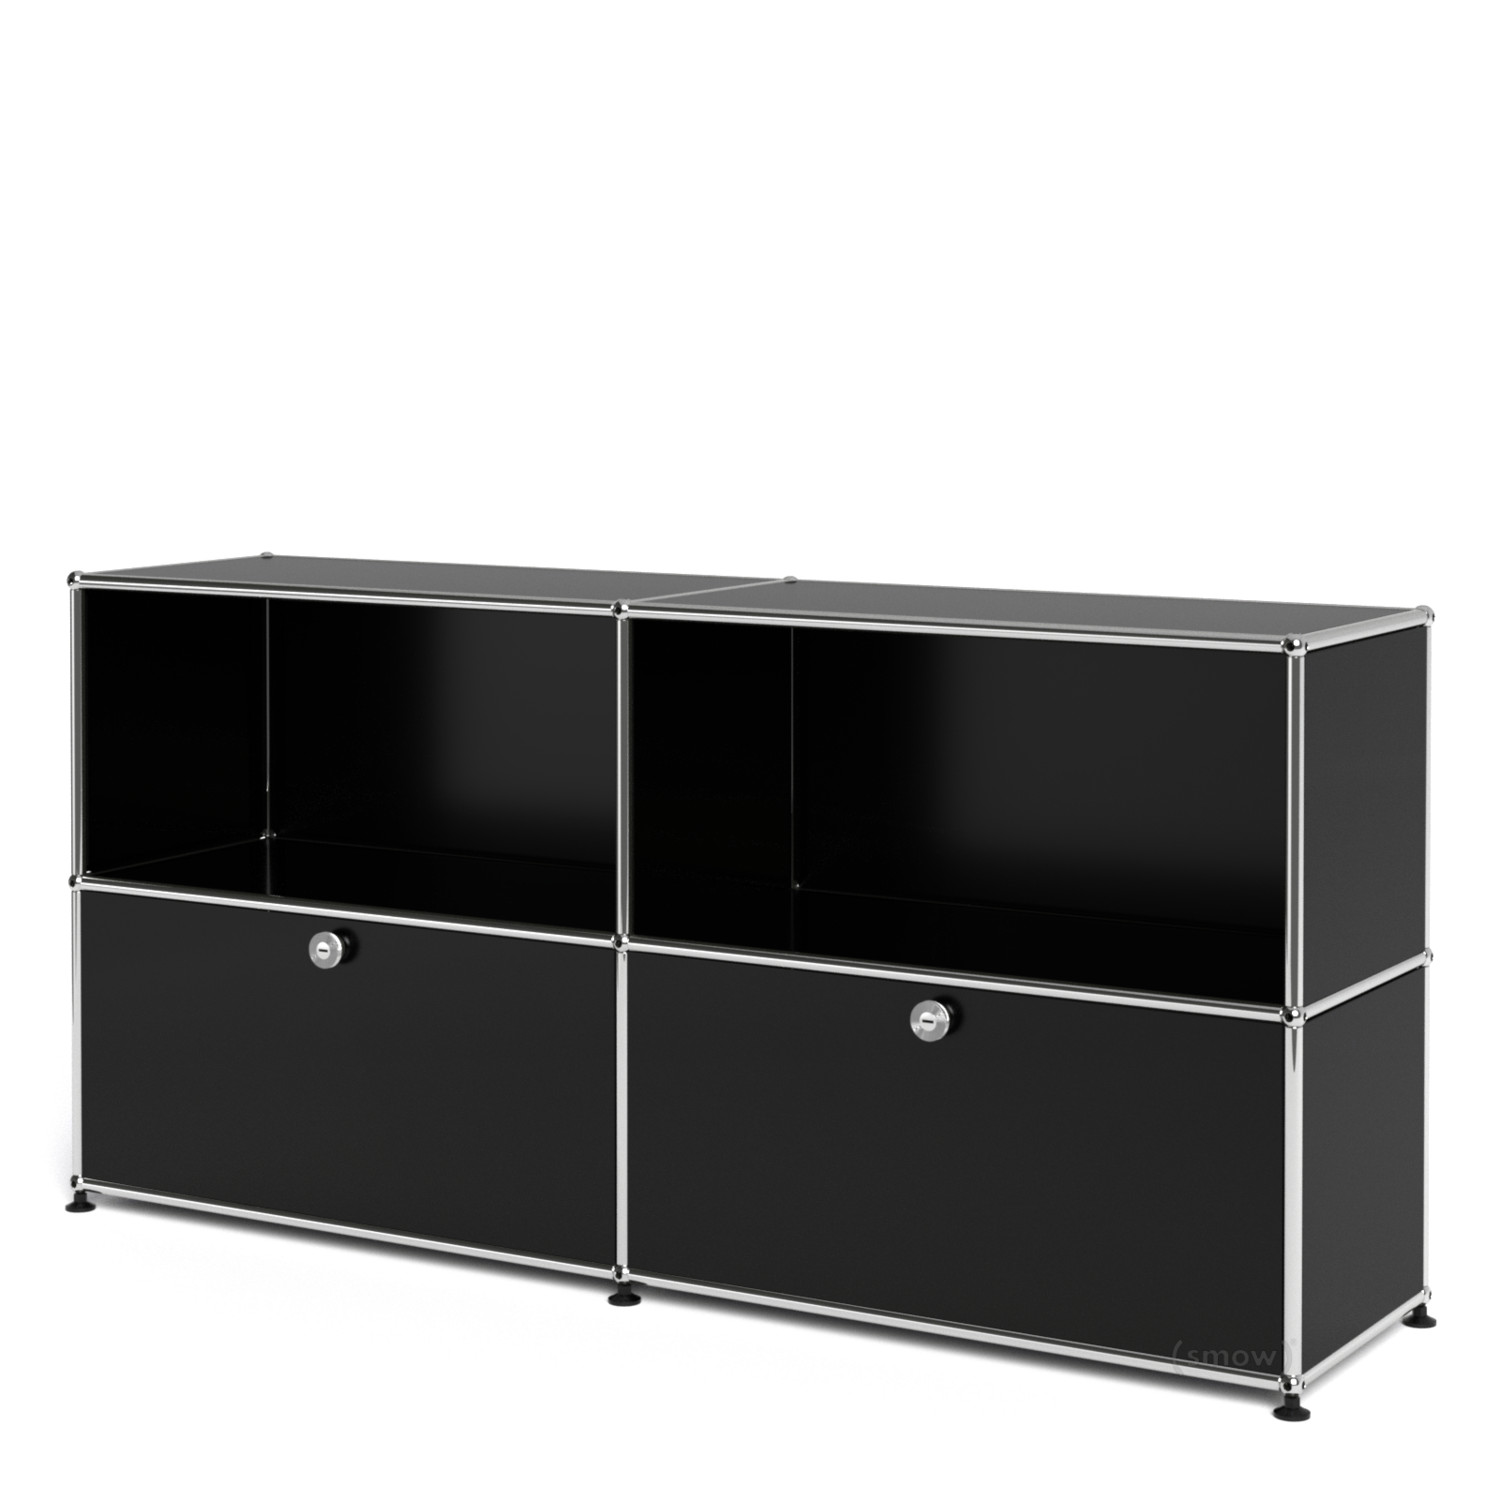 usm haller sideboard l mit 2 klappen von fritz haller paul sch rer designerm bel von. Black Bedroom Furniture Sets. Home Design Ideas